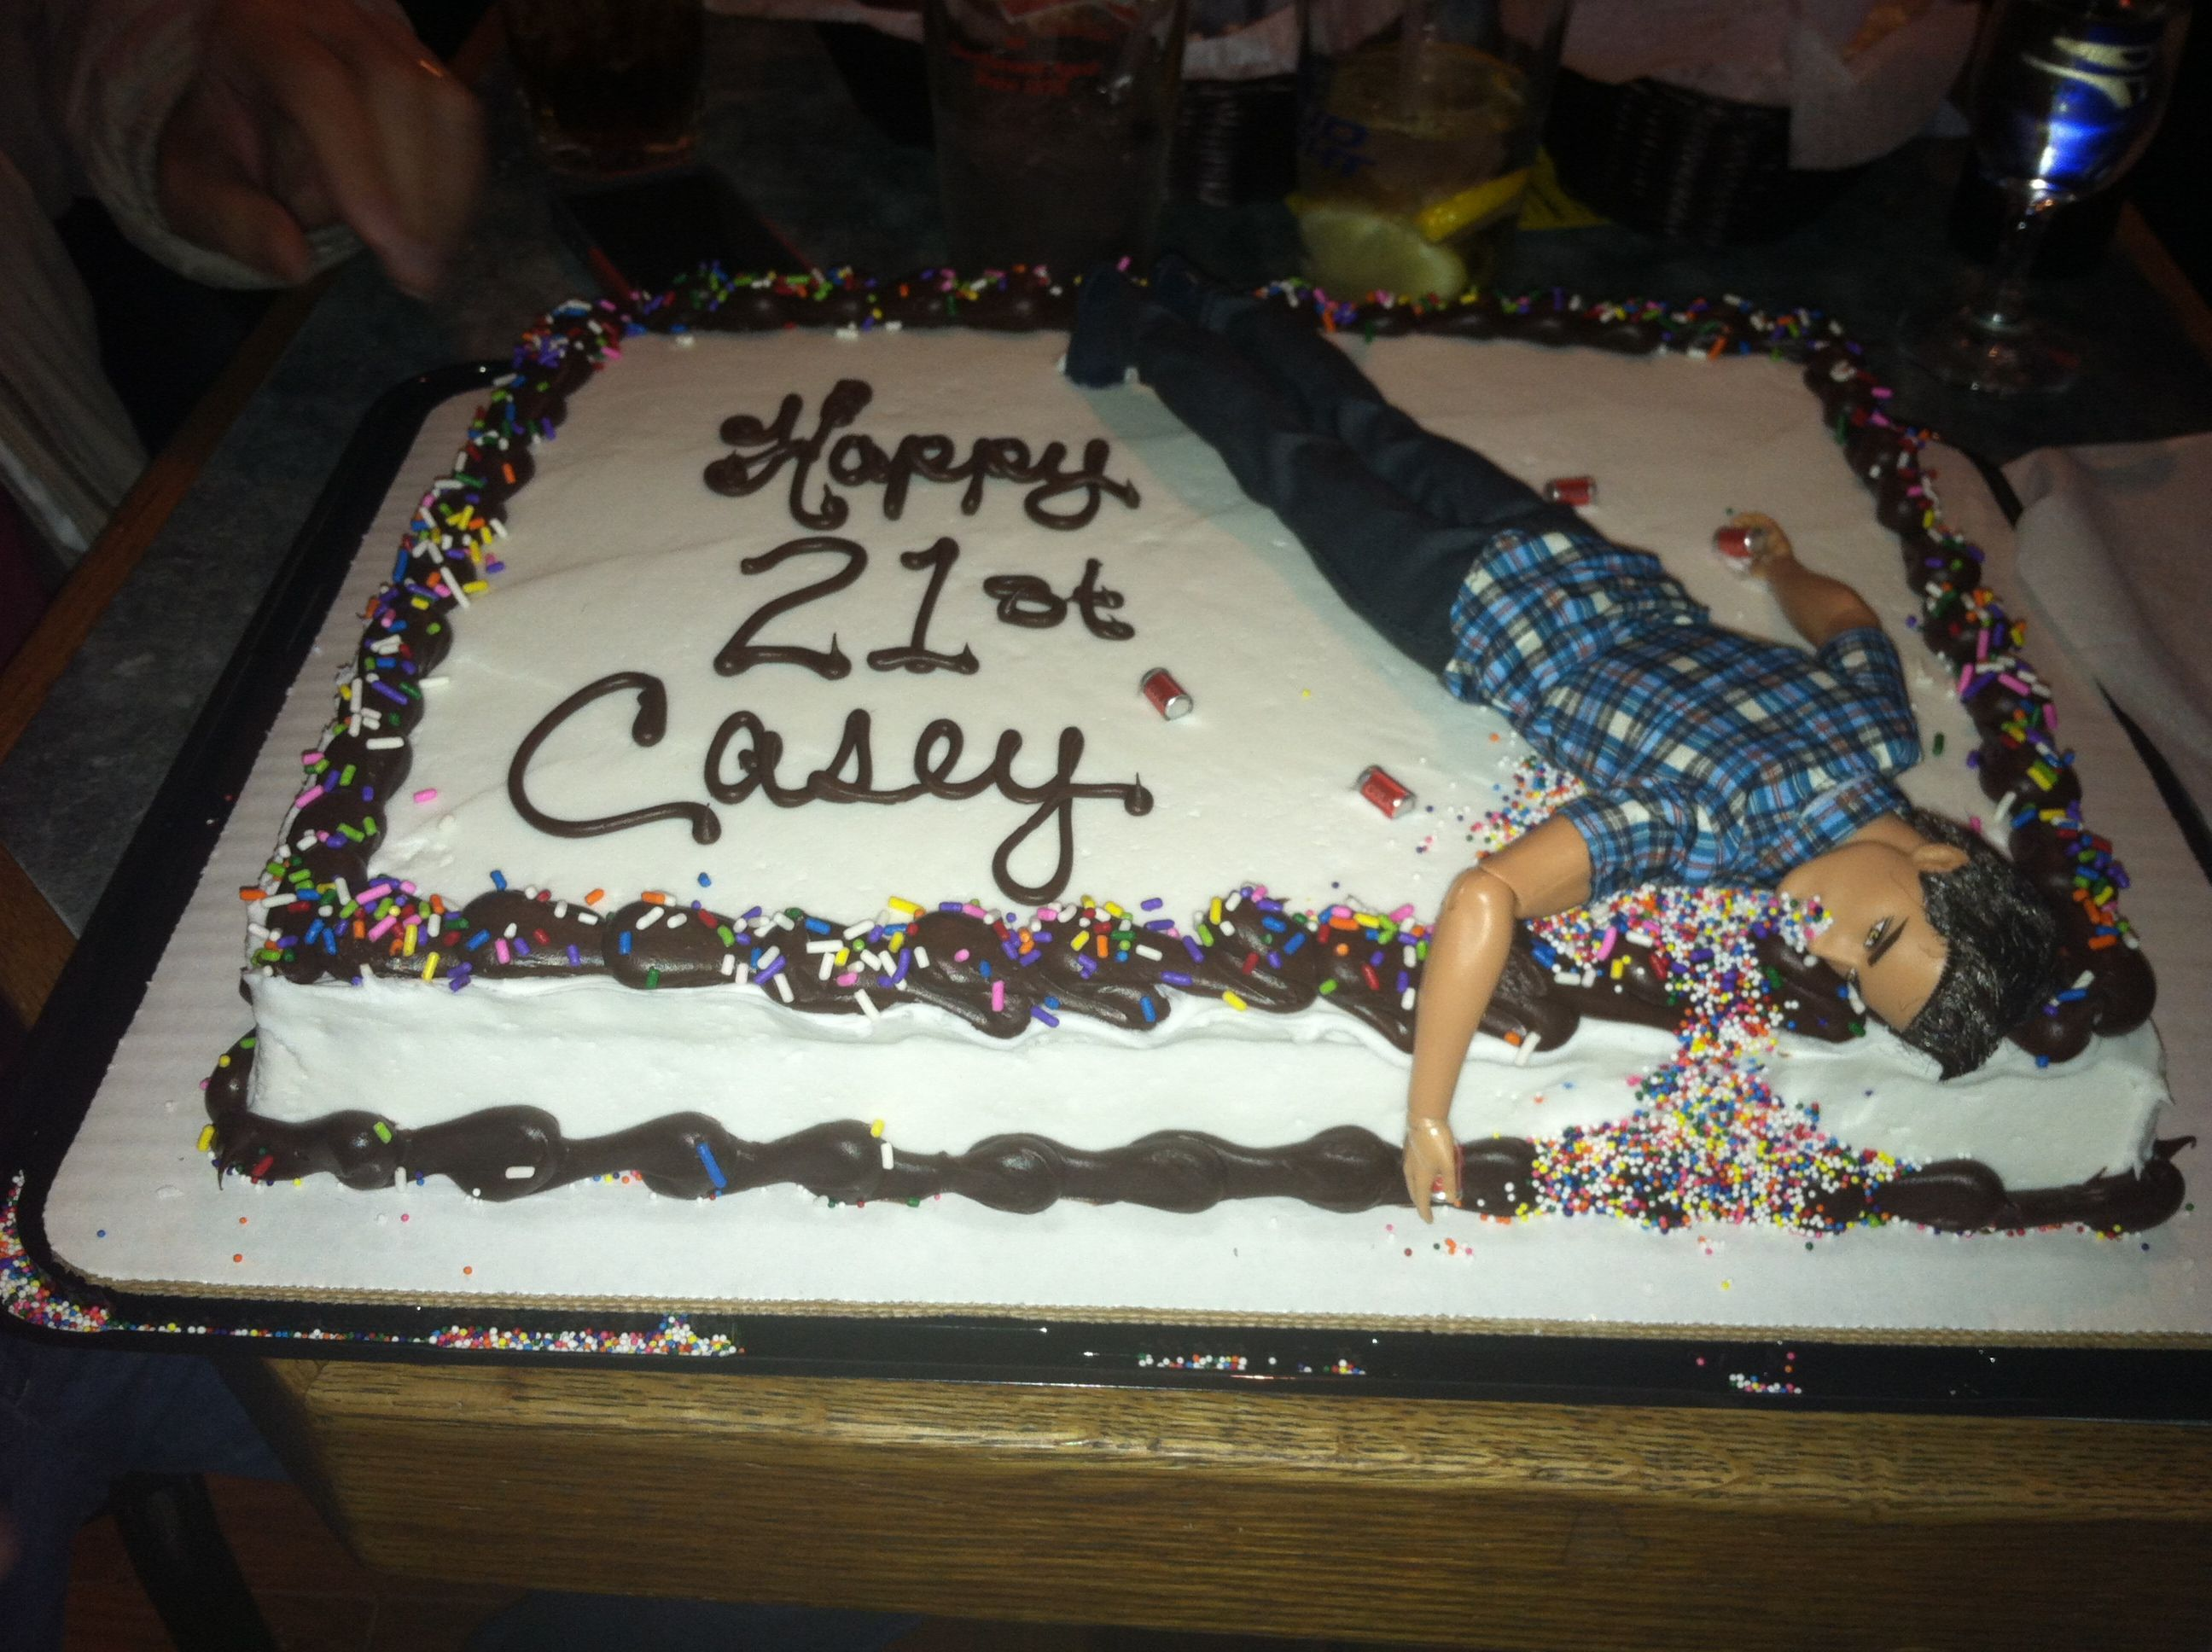 The birthday cake I made for my brothers 21st...A ken doll just casually throwing up some sprinkles after sipping some beers. No big.